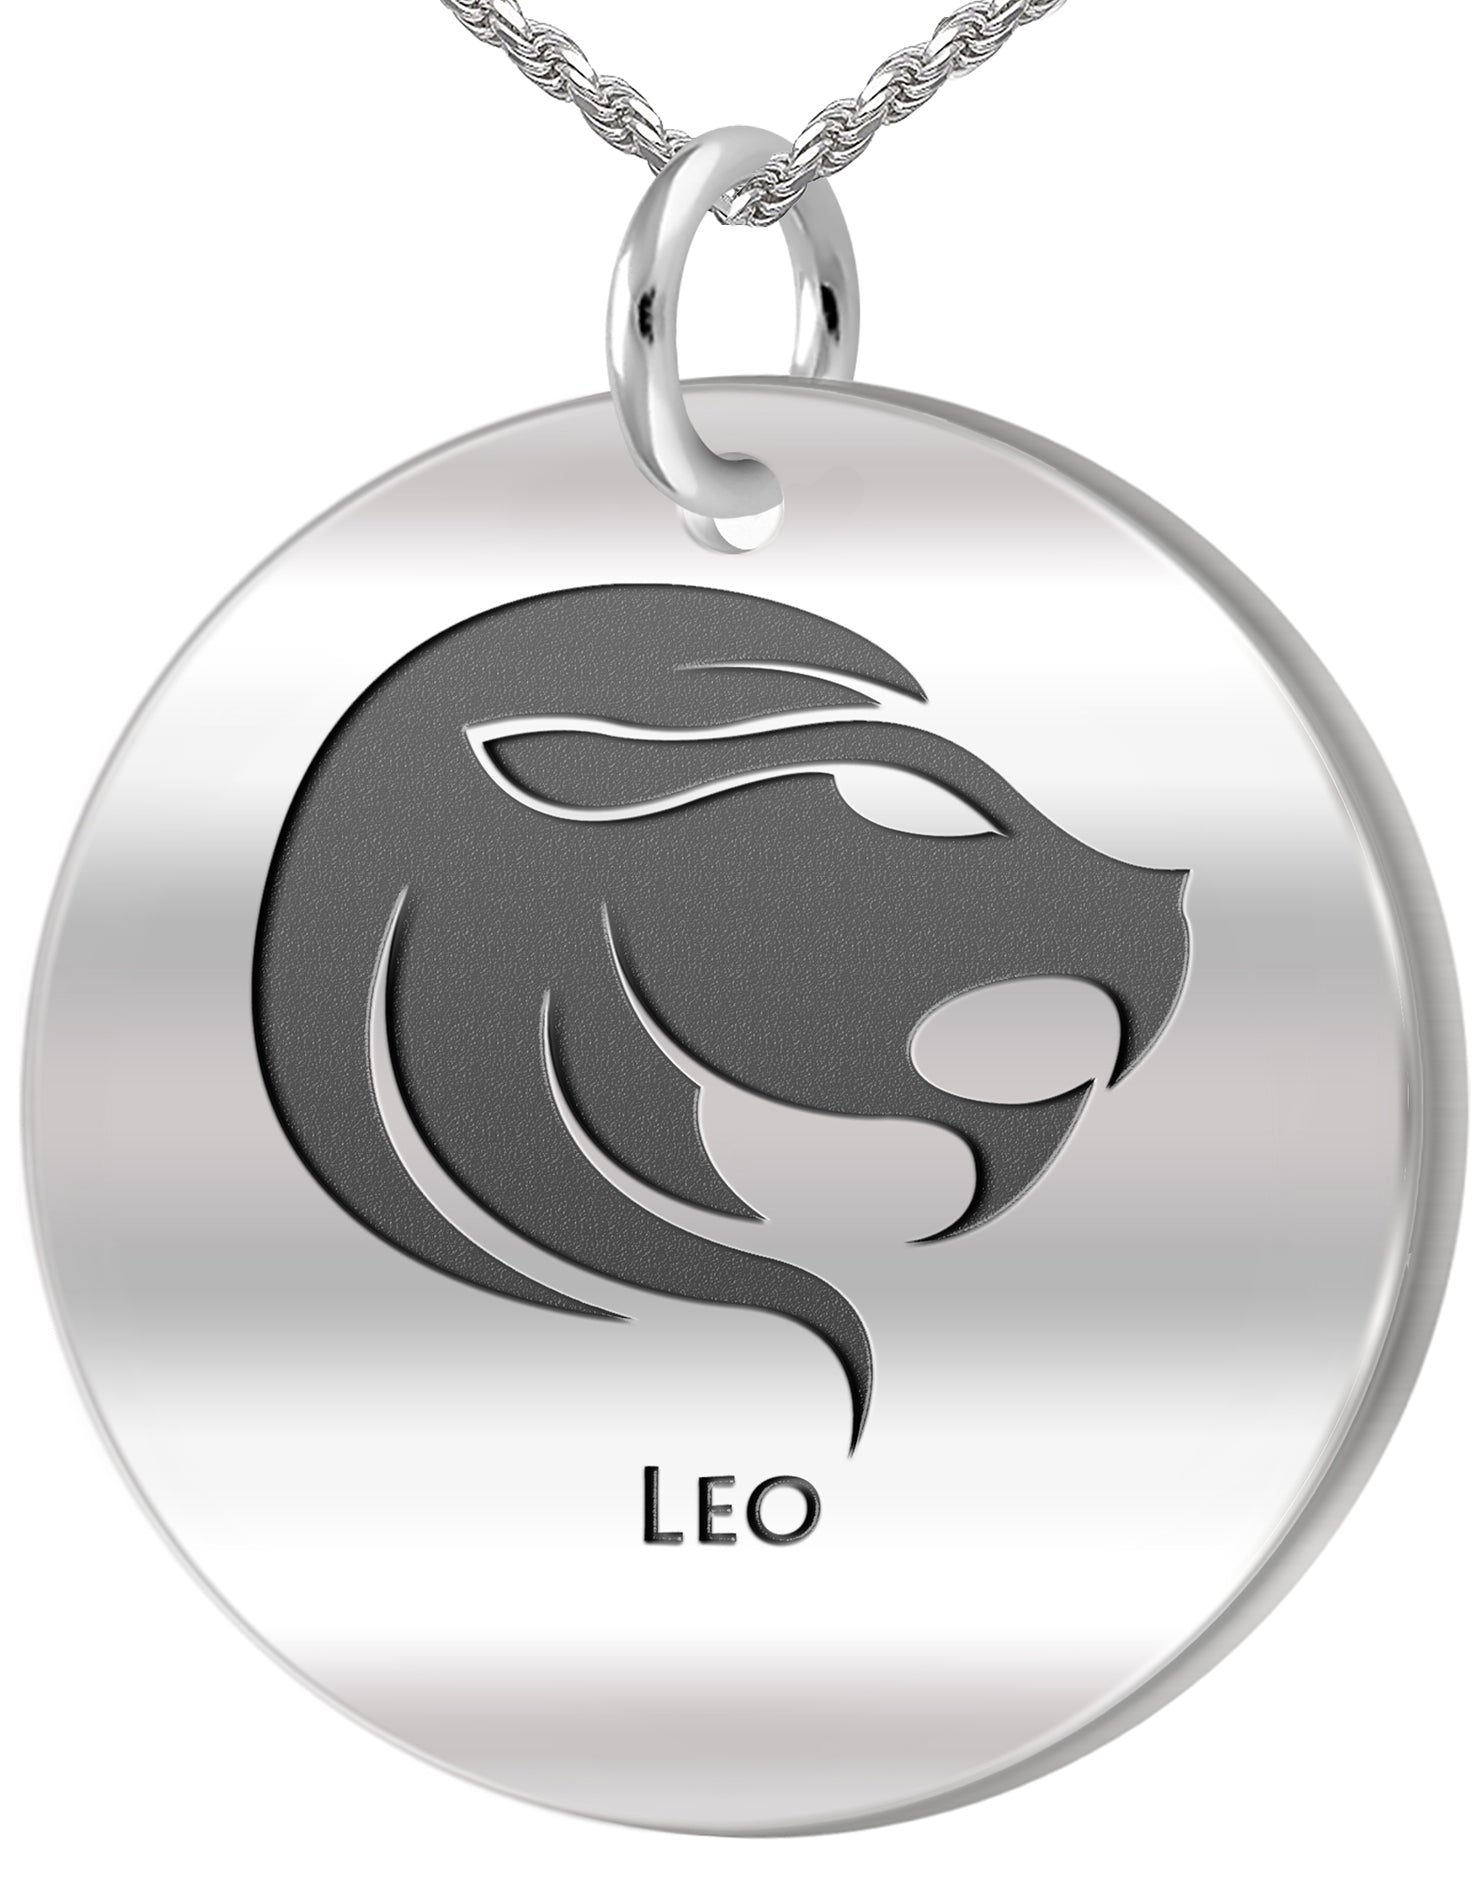 Leo Necklace - Zodiac Pendant Necklace In 0.925 Silver